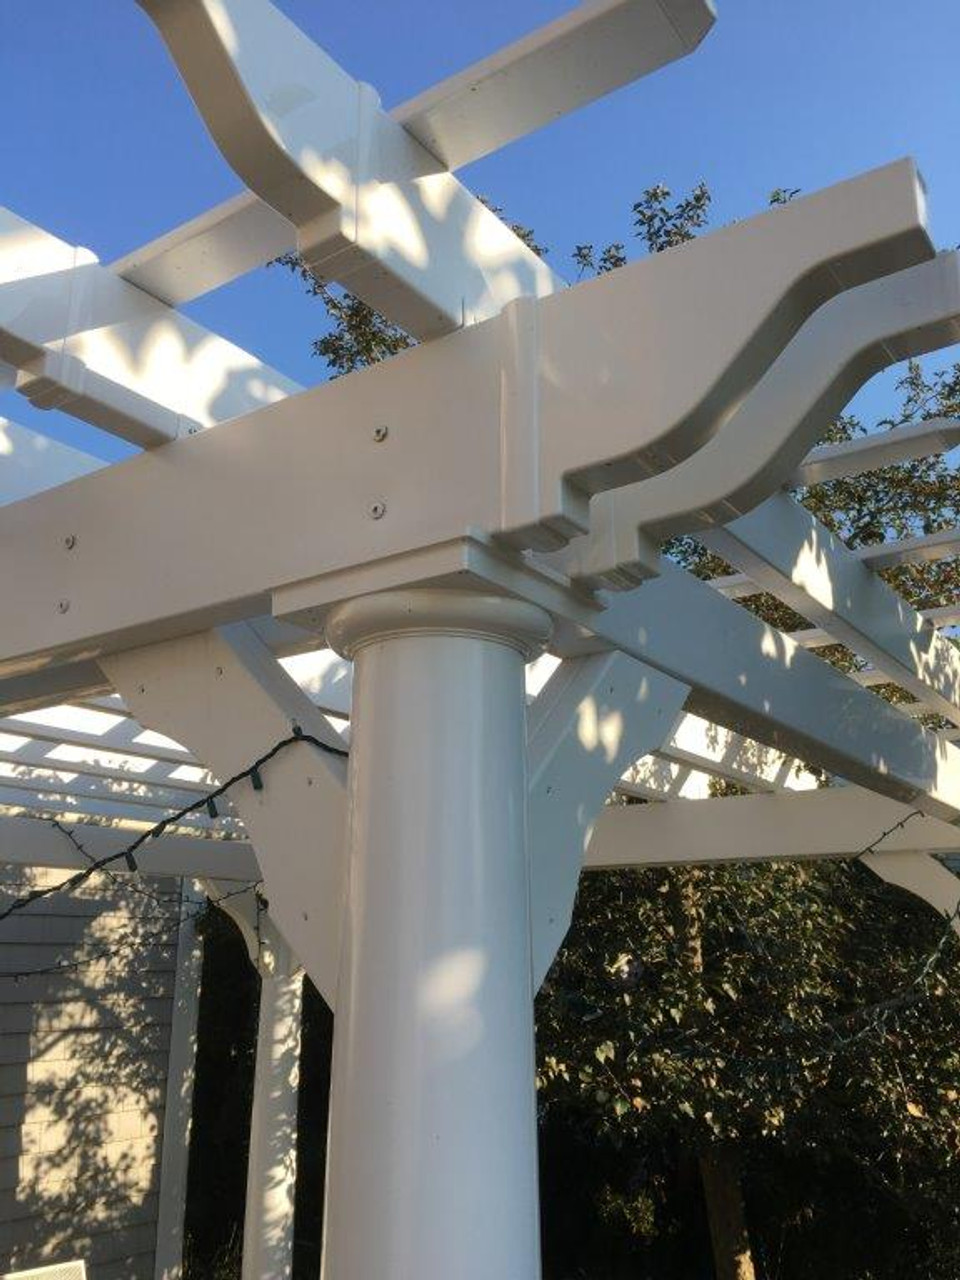 Close up of decorative rafter tails on the double 2x8 beams.